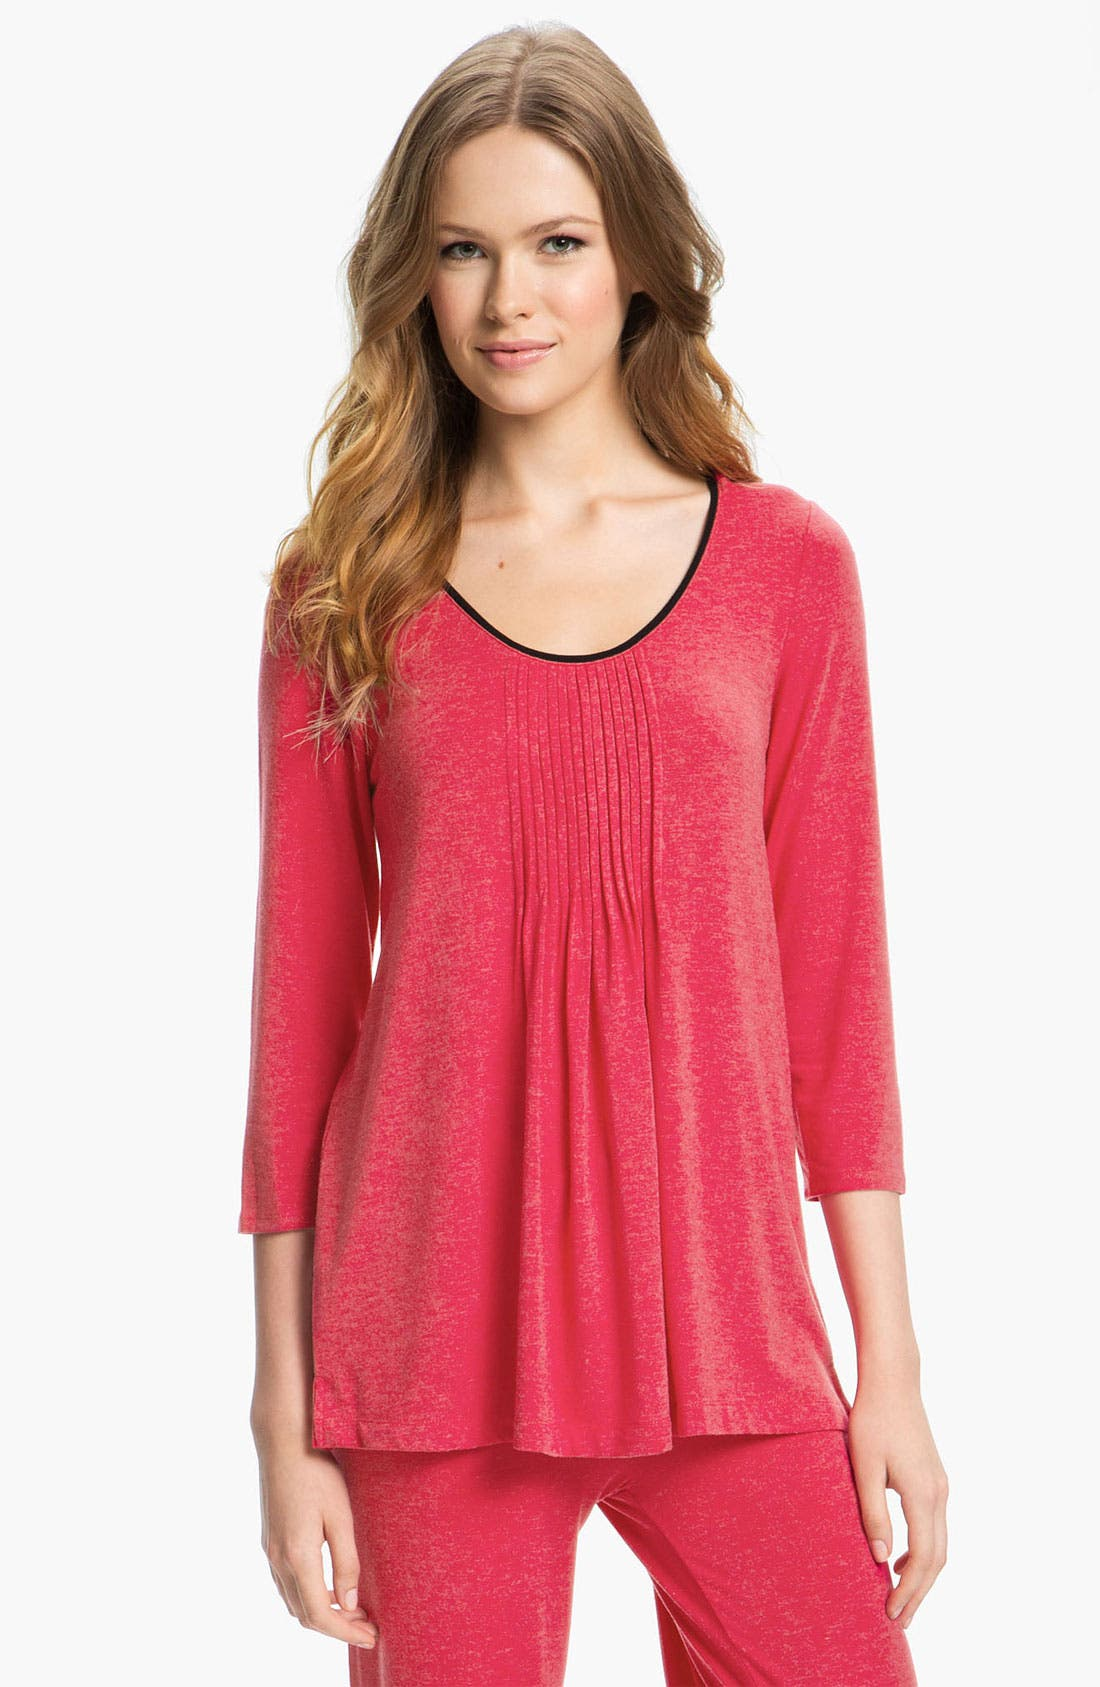 Alternate Image 1 Selected - DKNY '7 Easy Pieces' Pintuck Top